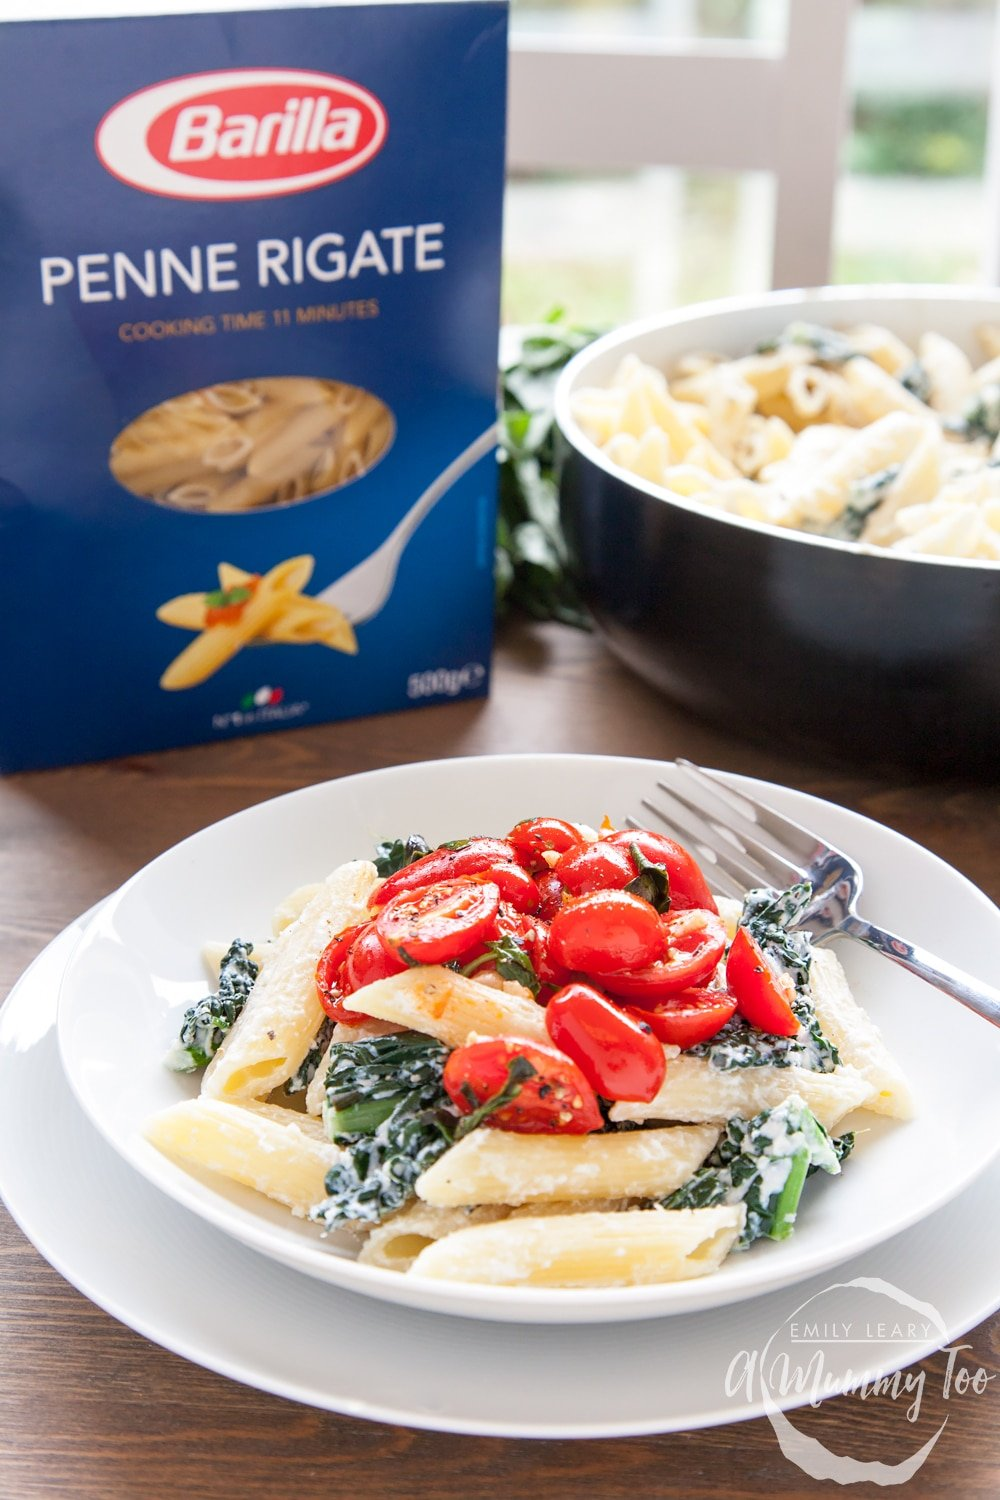 The completed cavolo nero recipe with a box Barilla penne rigate pasta used to create the recipe.